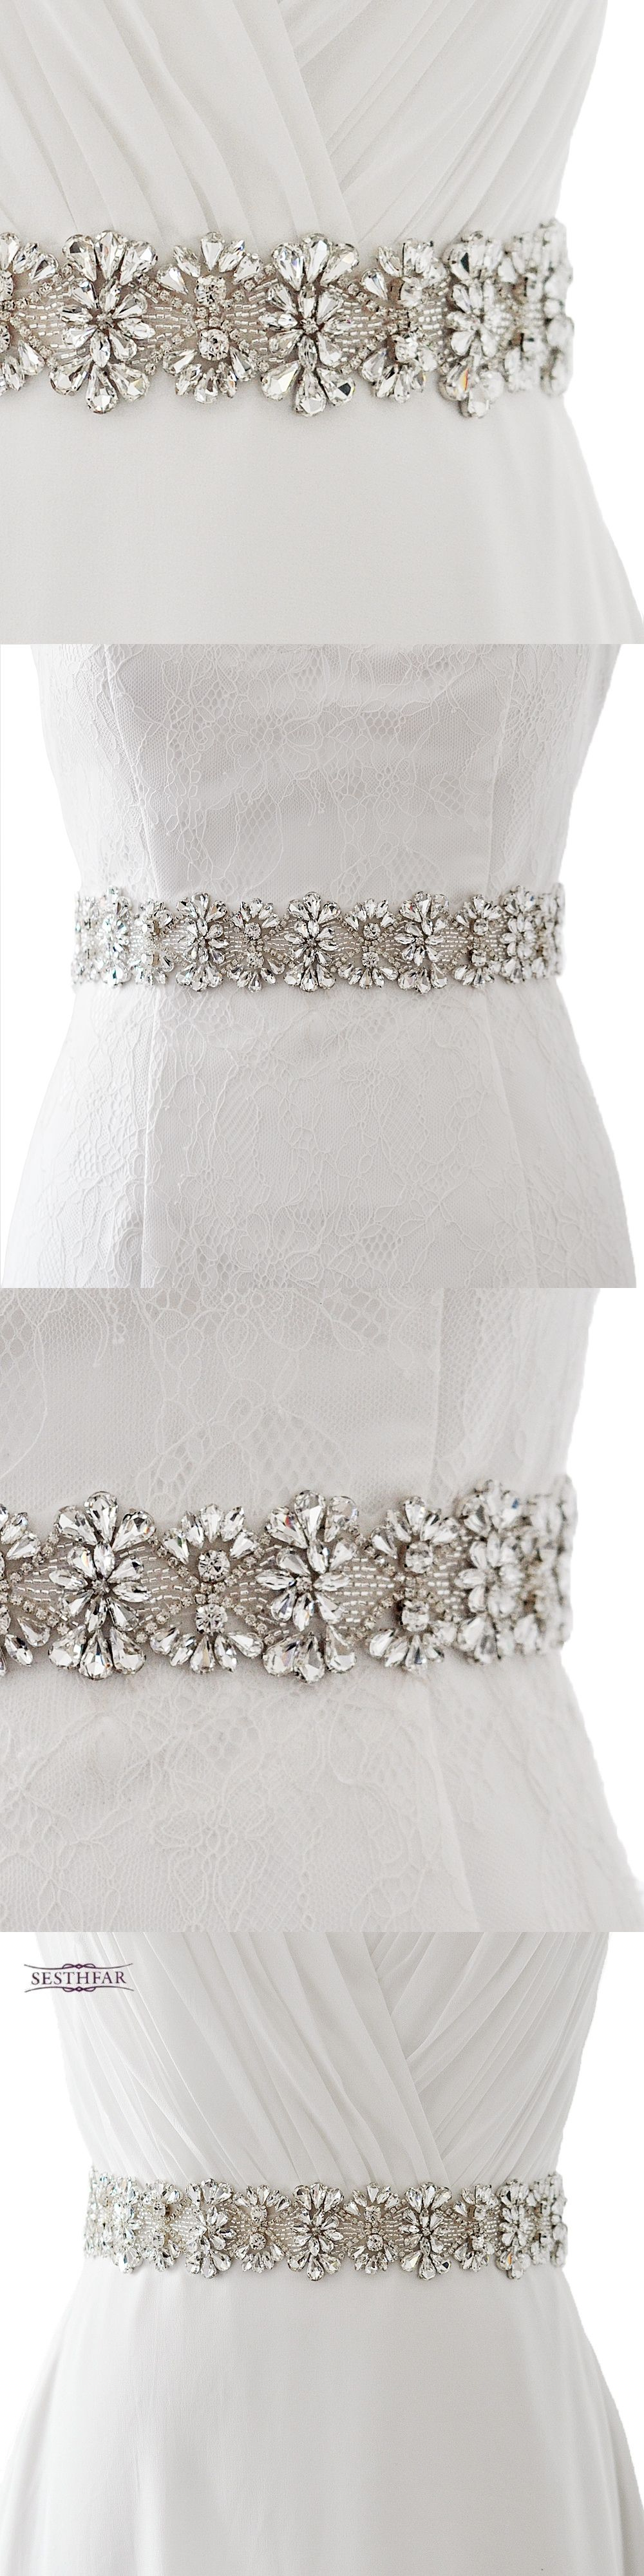 S wedding belts with diamond and crystal bead wedding accessories